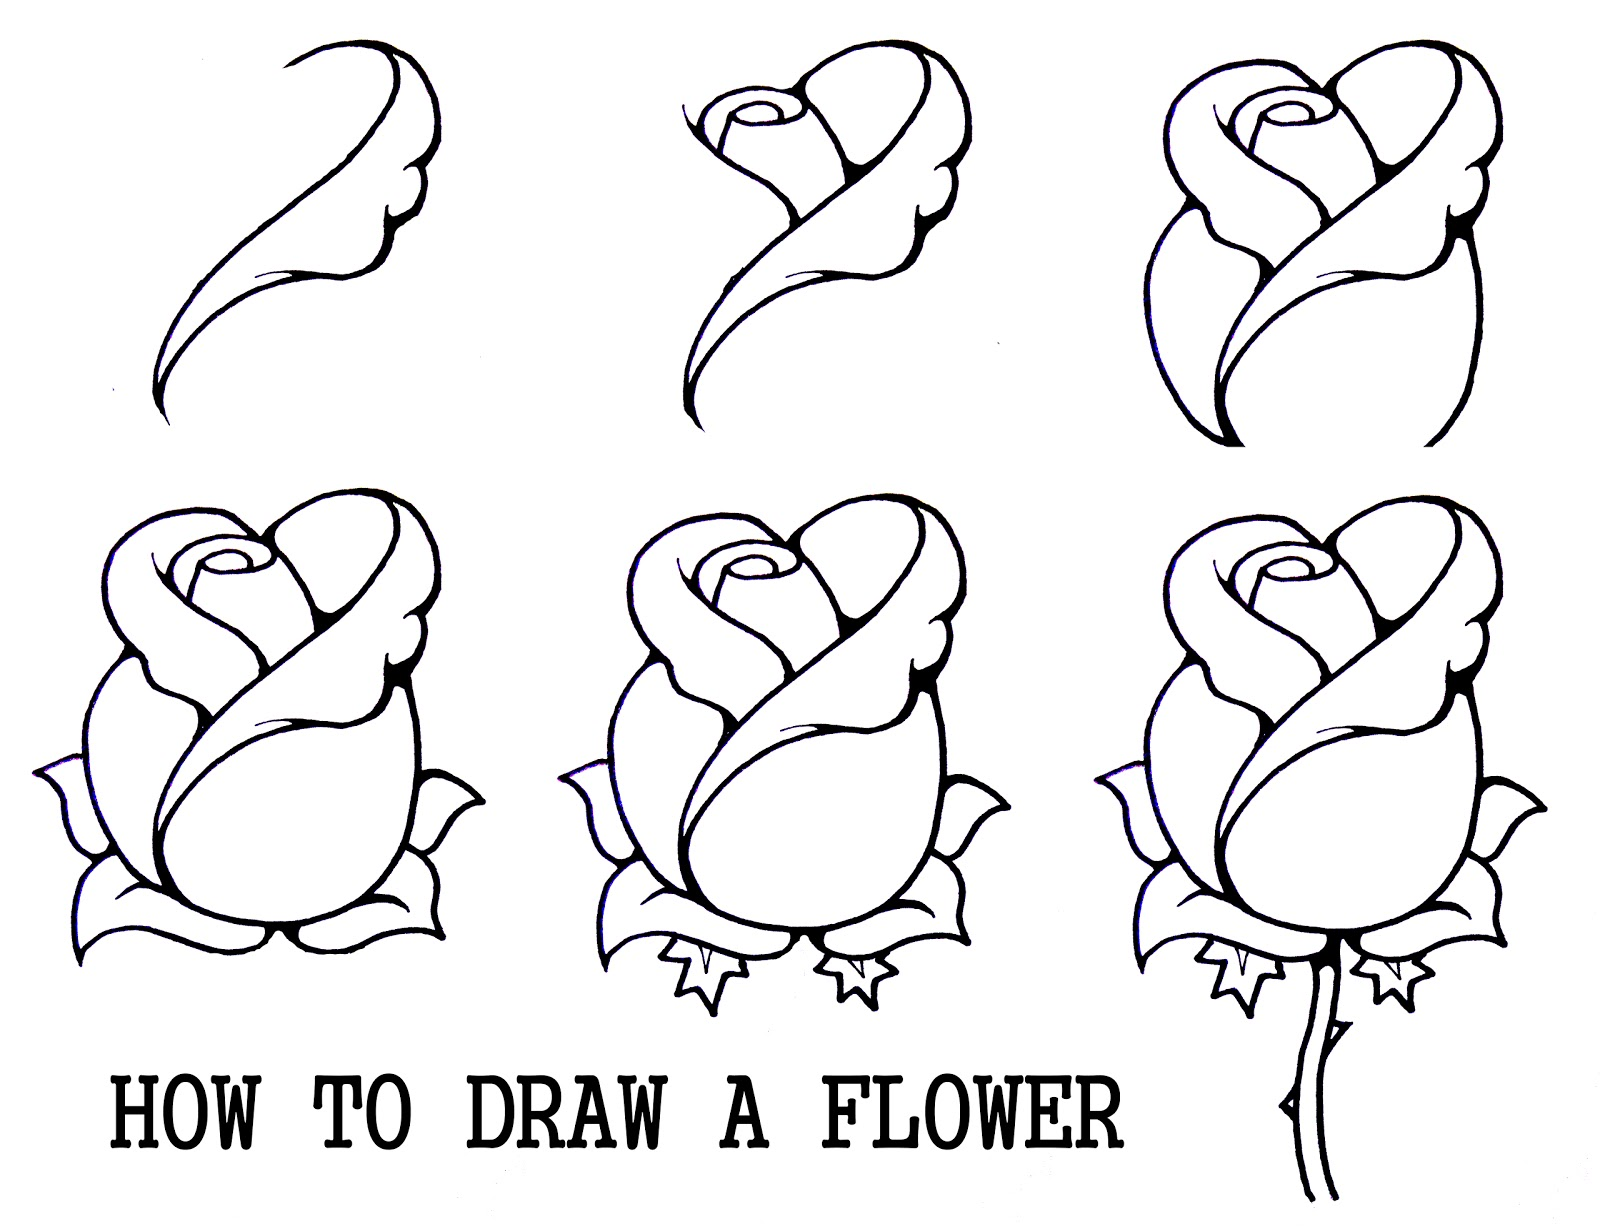 Daryl hobson artwork how to draw a flower step by step for How to draw a basic flower